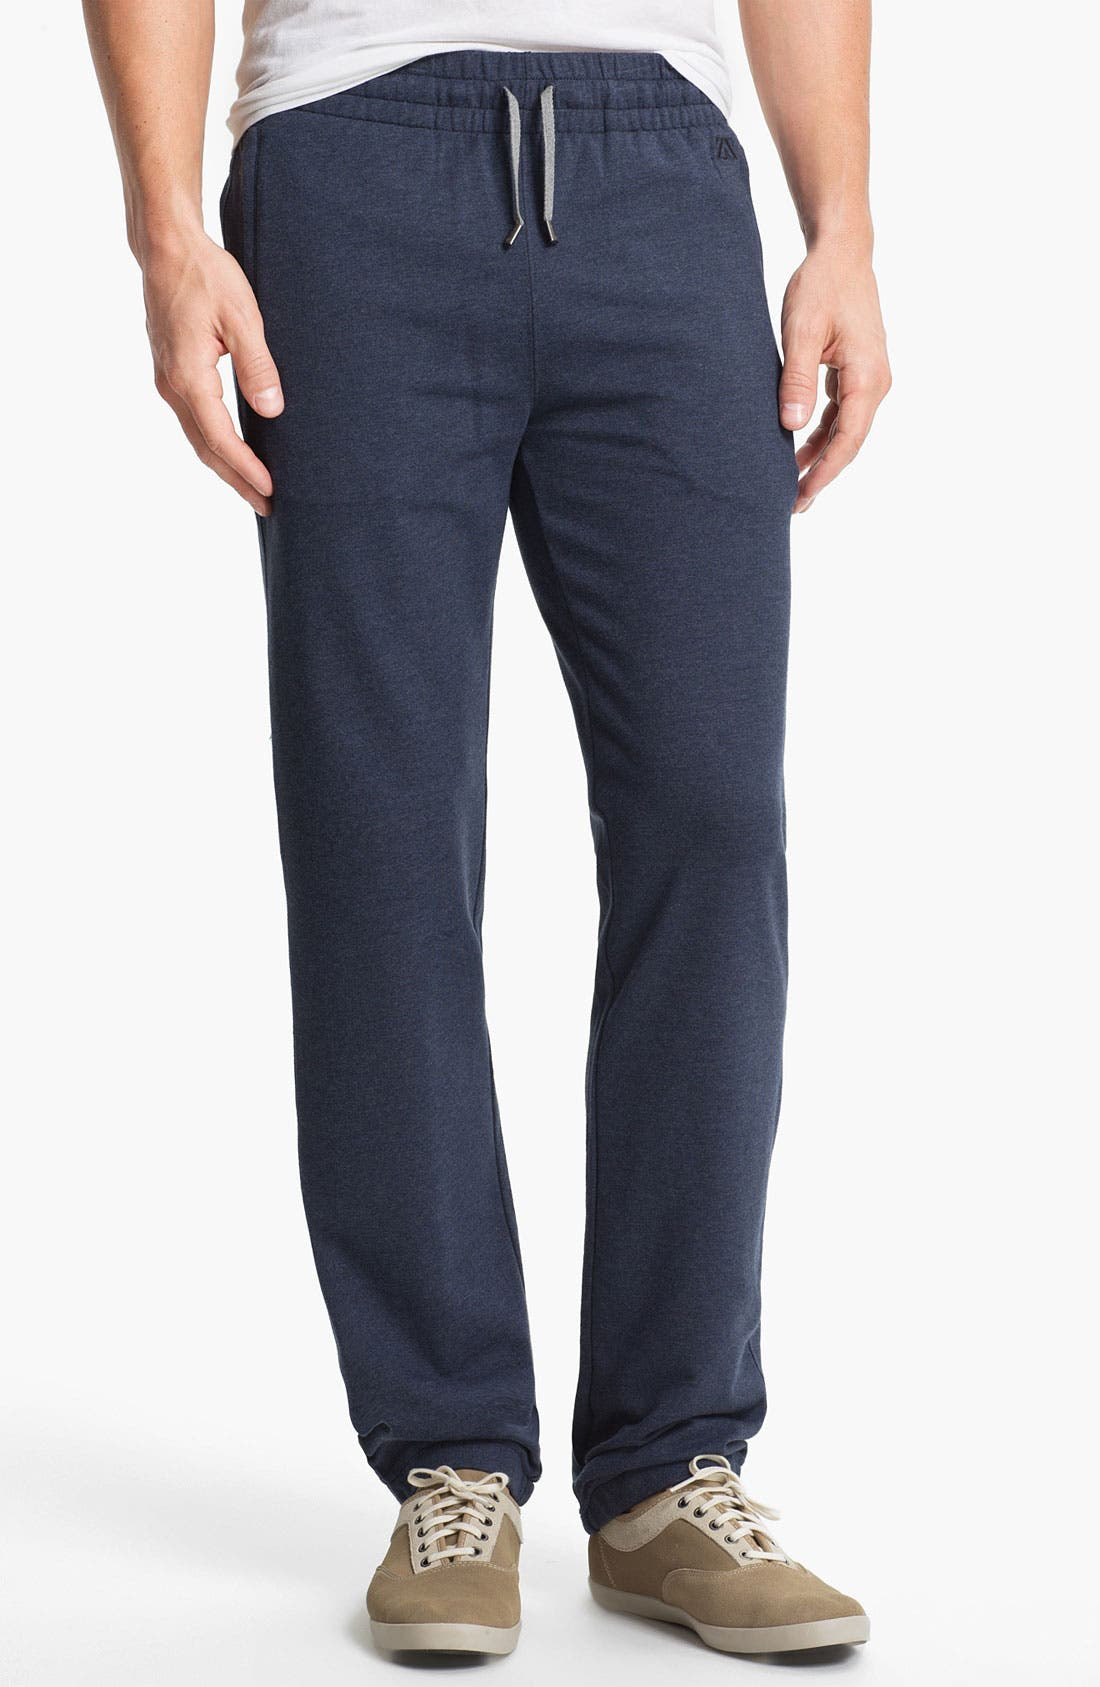 Alternate Image 1 Selected - Zegna Sport Cotton Blend Lounge Pants